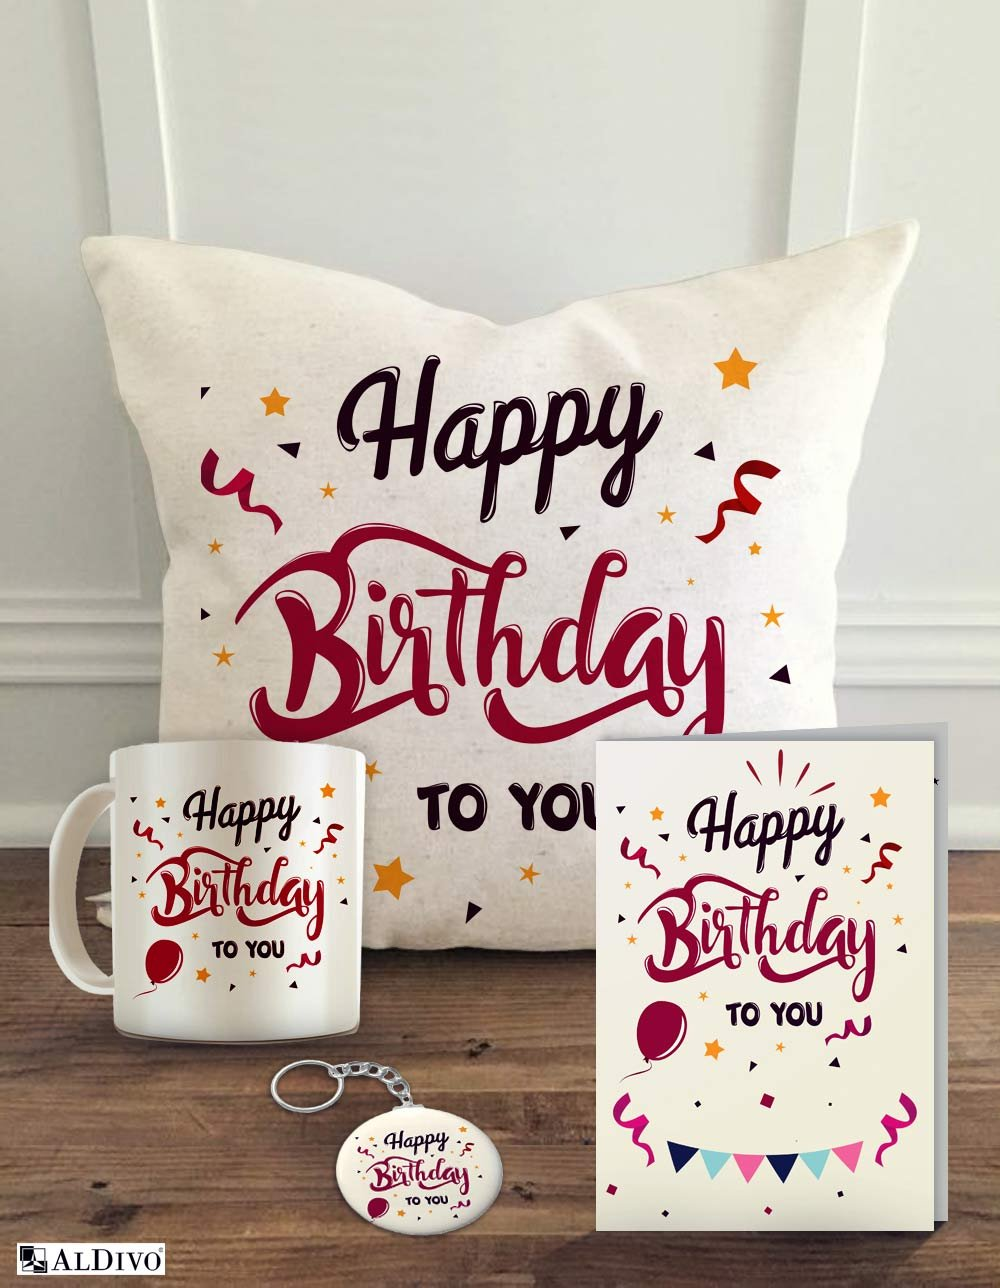 ALDIVO Happy Birthday to You (12  x 12  Cushion Cover with Filler +  sc 1 st  Amazon.in & Birthday Gift for Boyfriend: Buy Birthday Gift for Boyfriend Online ...